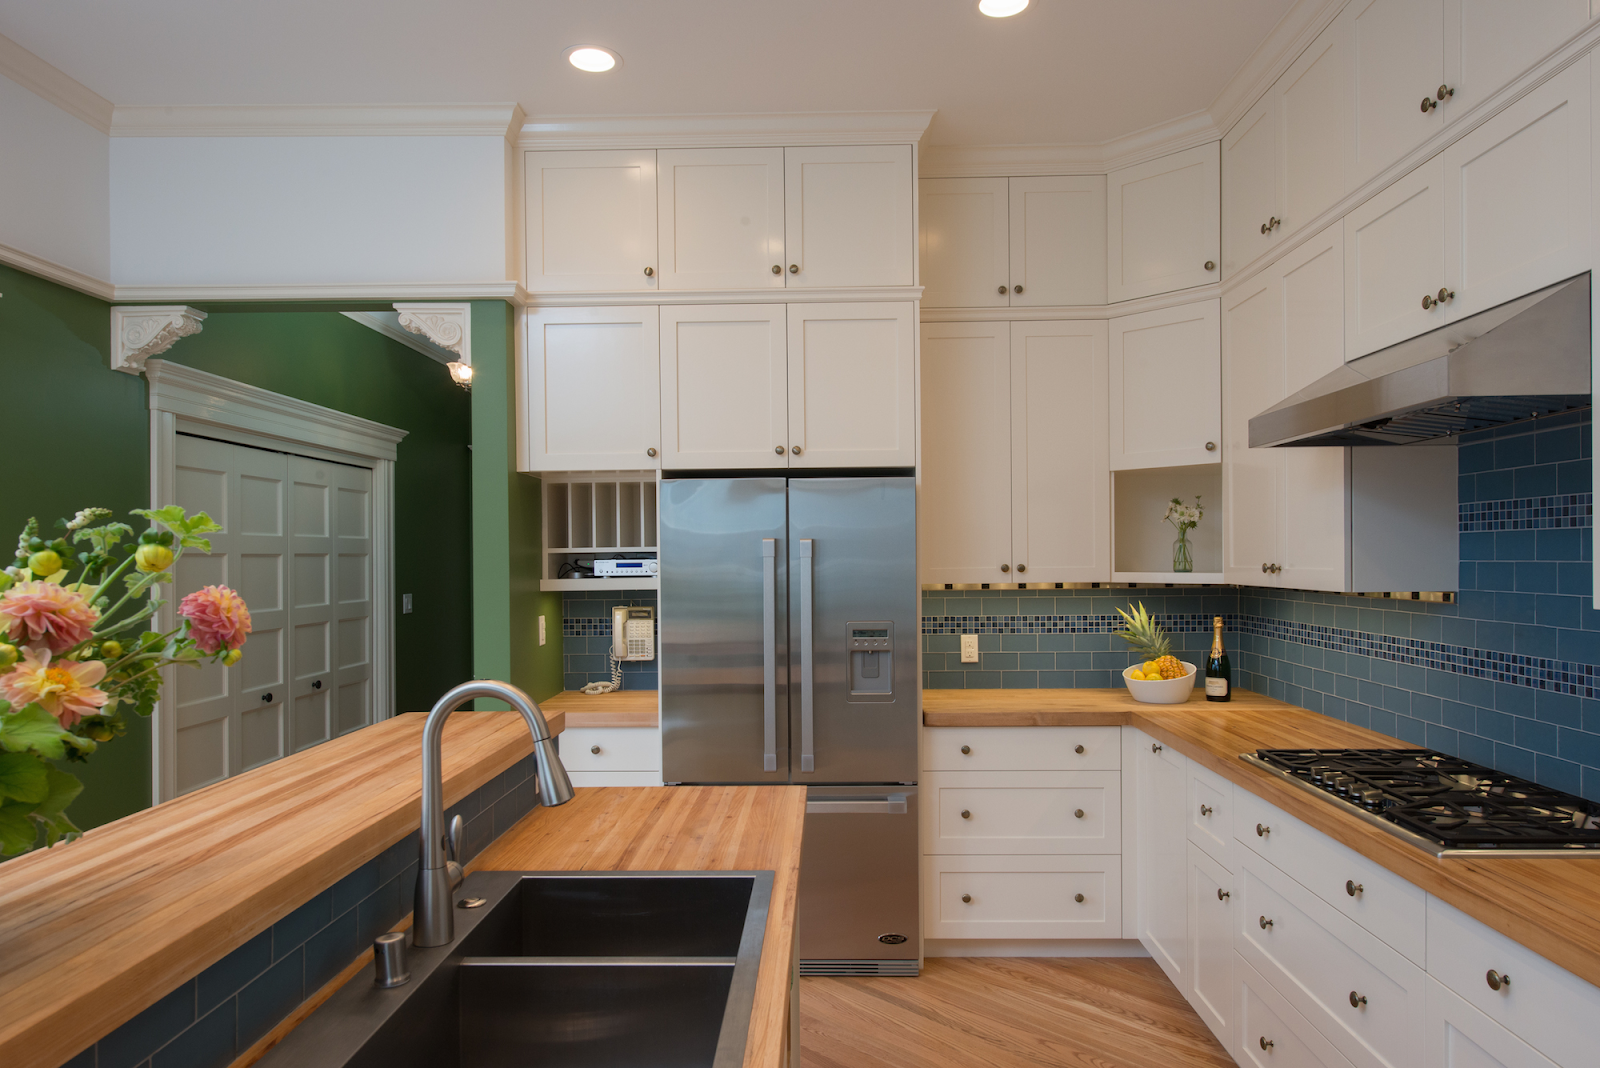 Kitchen by Wallace Remodeling